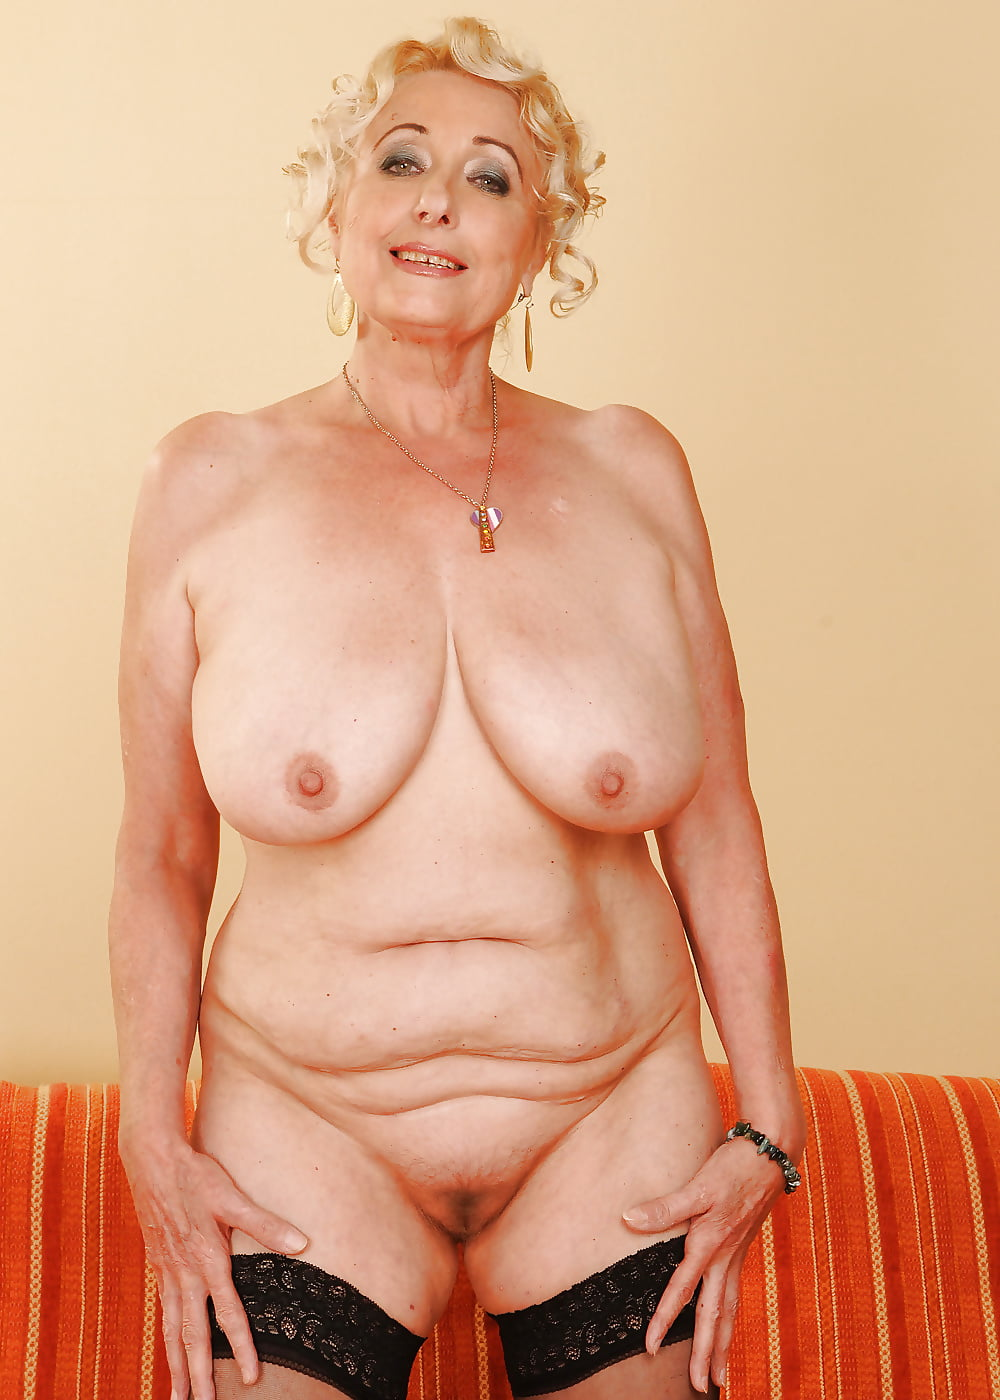 older-women-sagging-breasts-galleries-mental-sexual